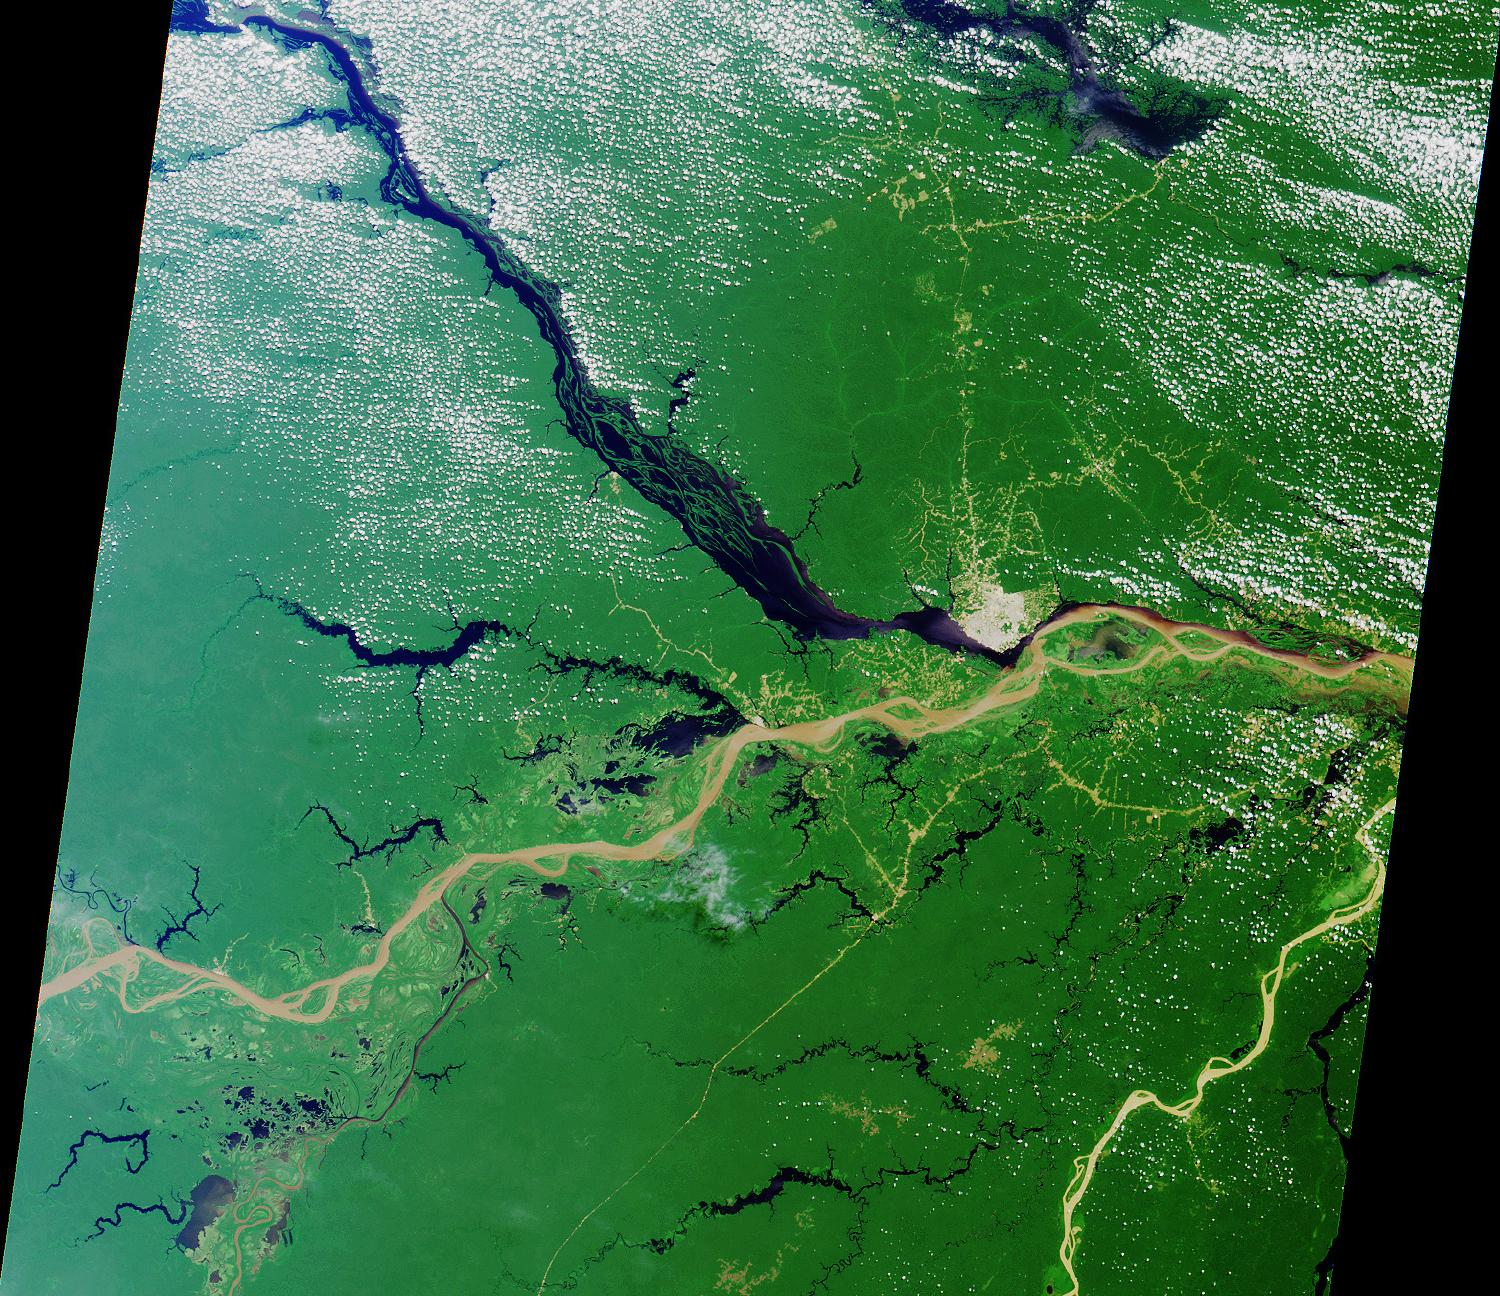 Satellite Image, Photo of the Convergence (Rios Solimoes and Negro) forming the Amazon River, Brazil